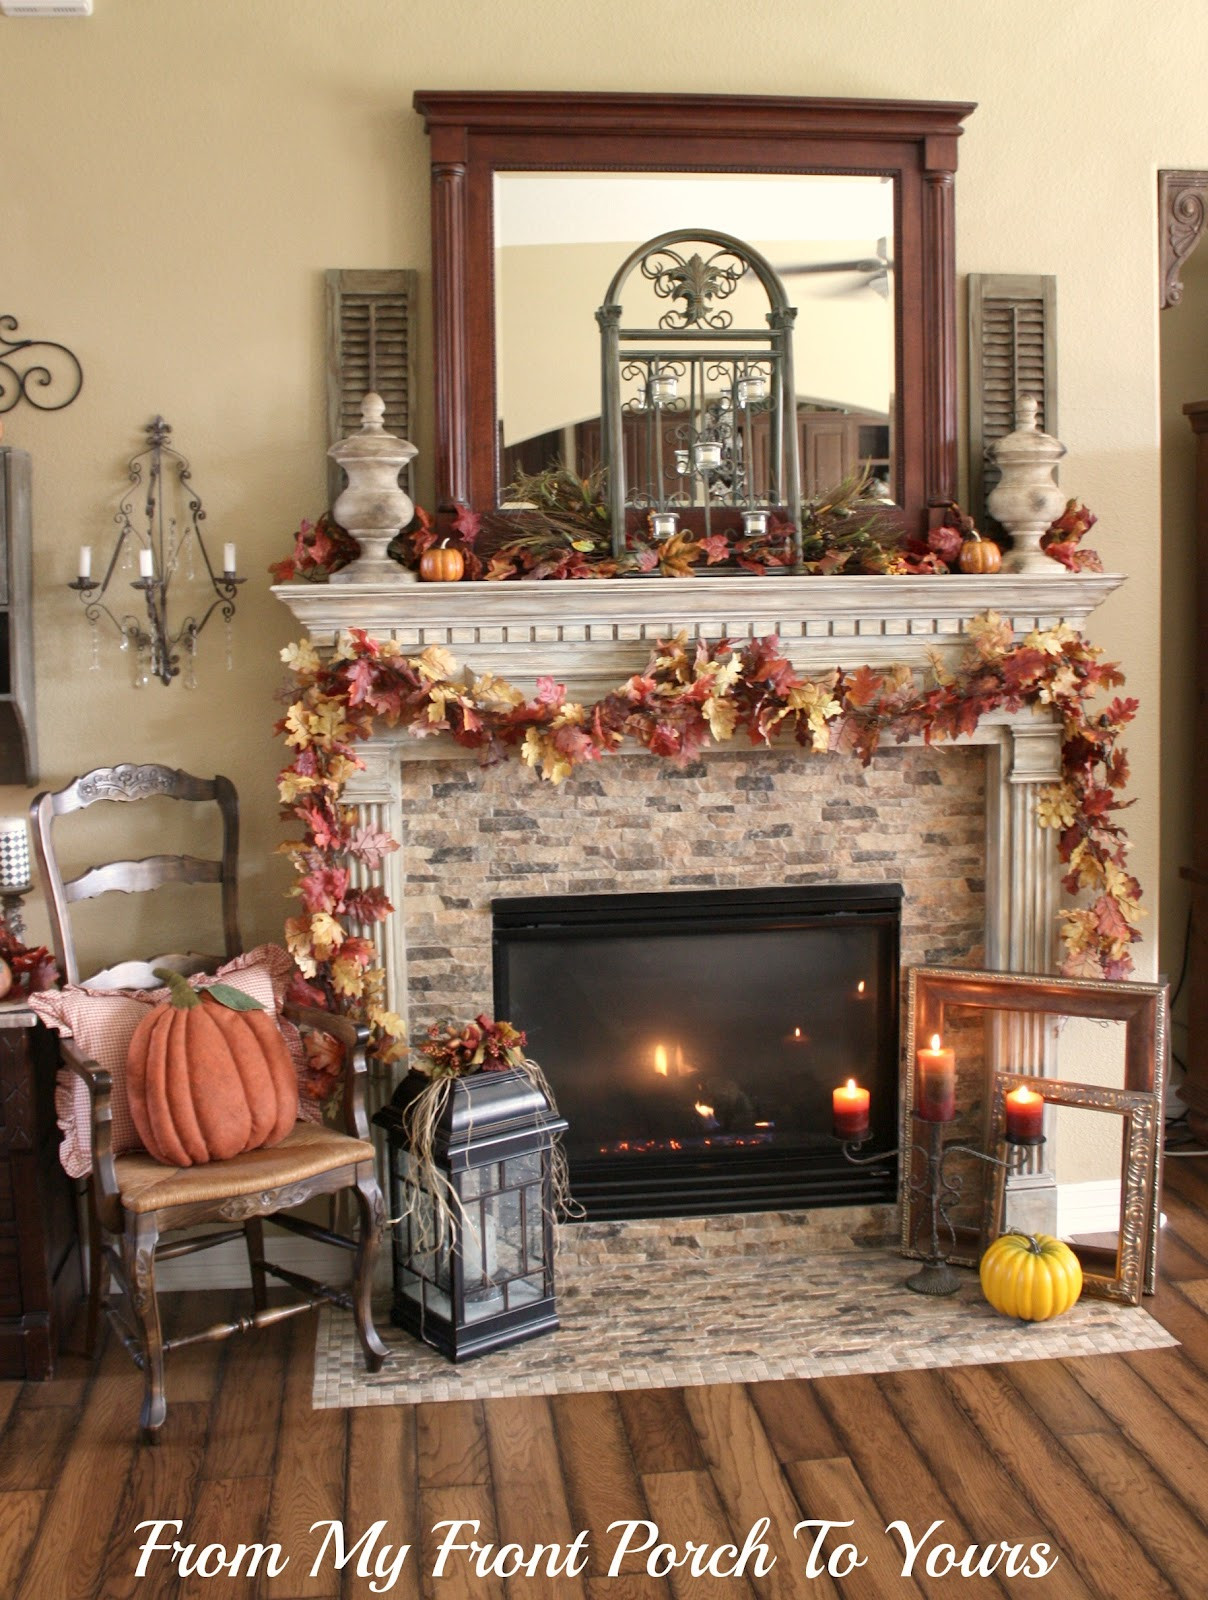 Fall Decor For Fireplace  From My Front Porch To Yours Memory Lane Fall Mantel 2012